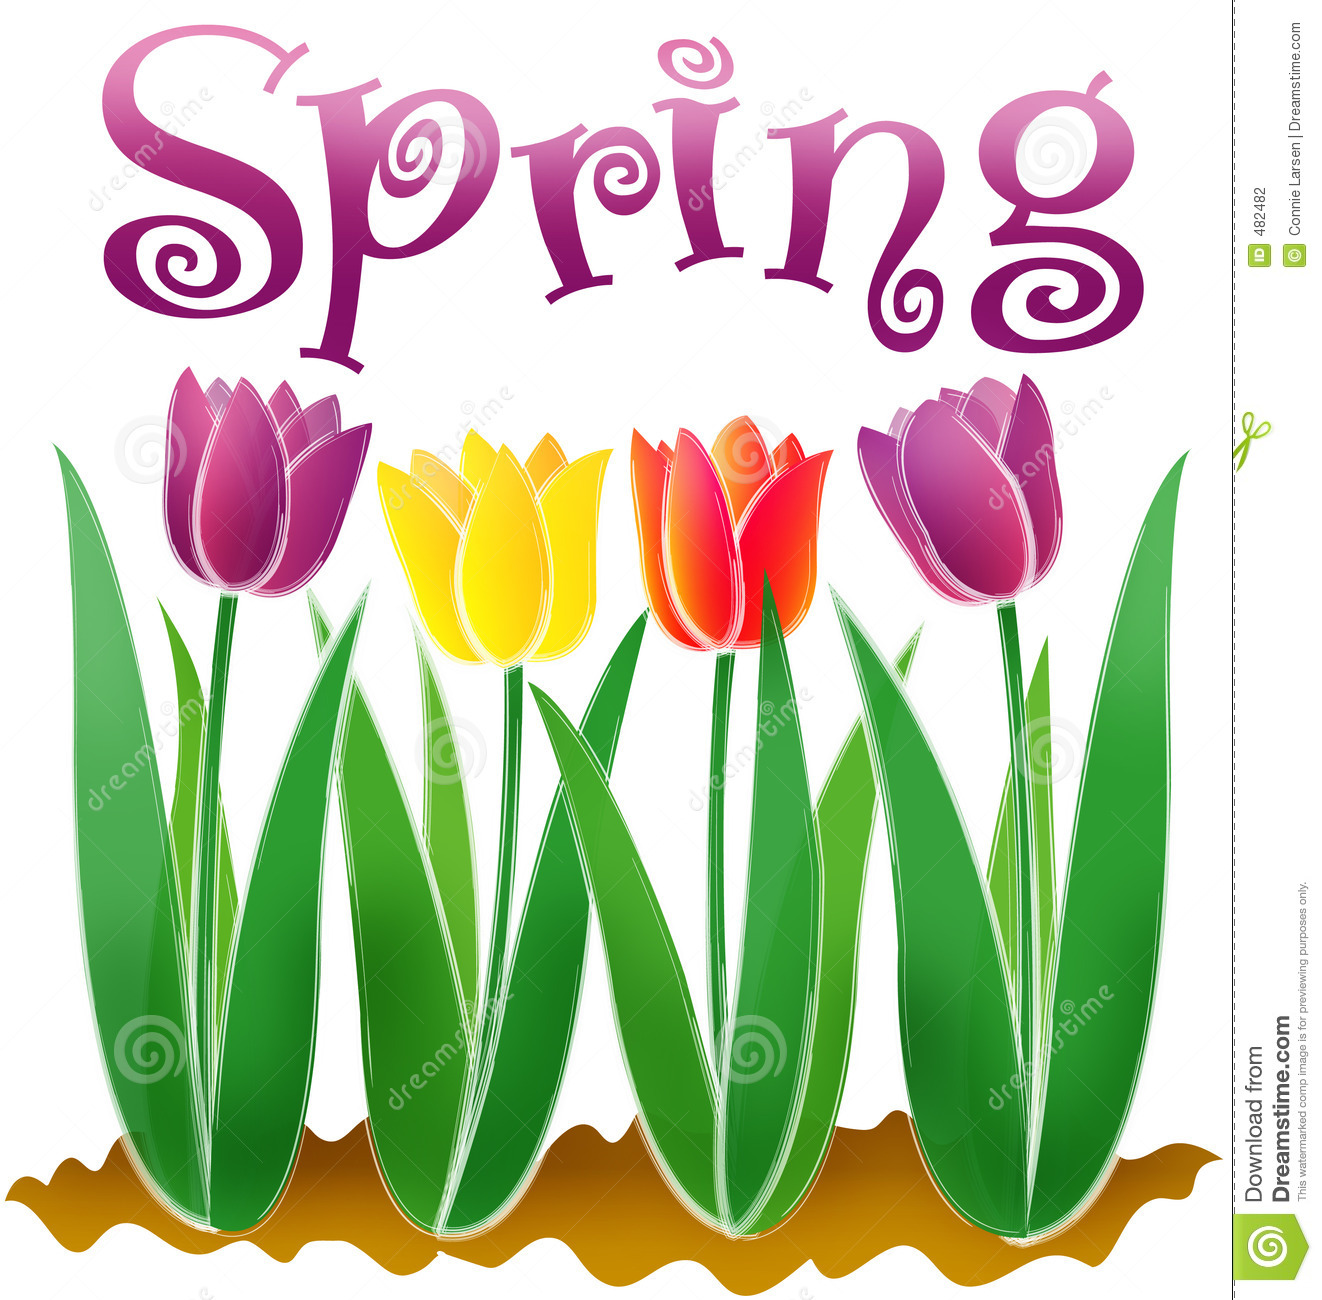 10171 Spring free clipart.